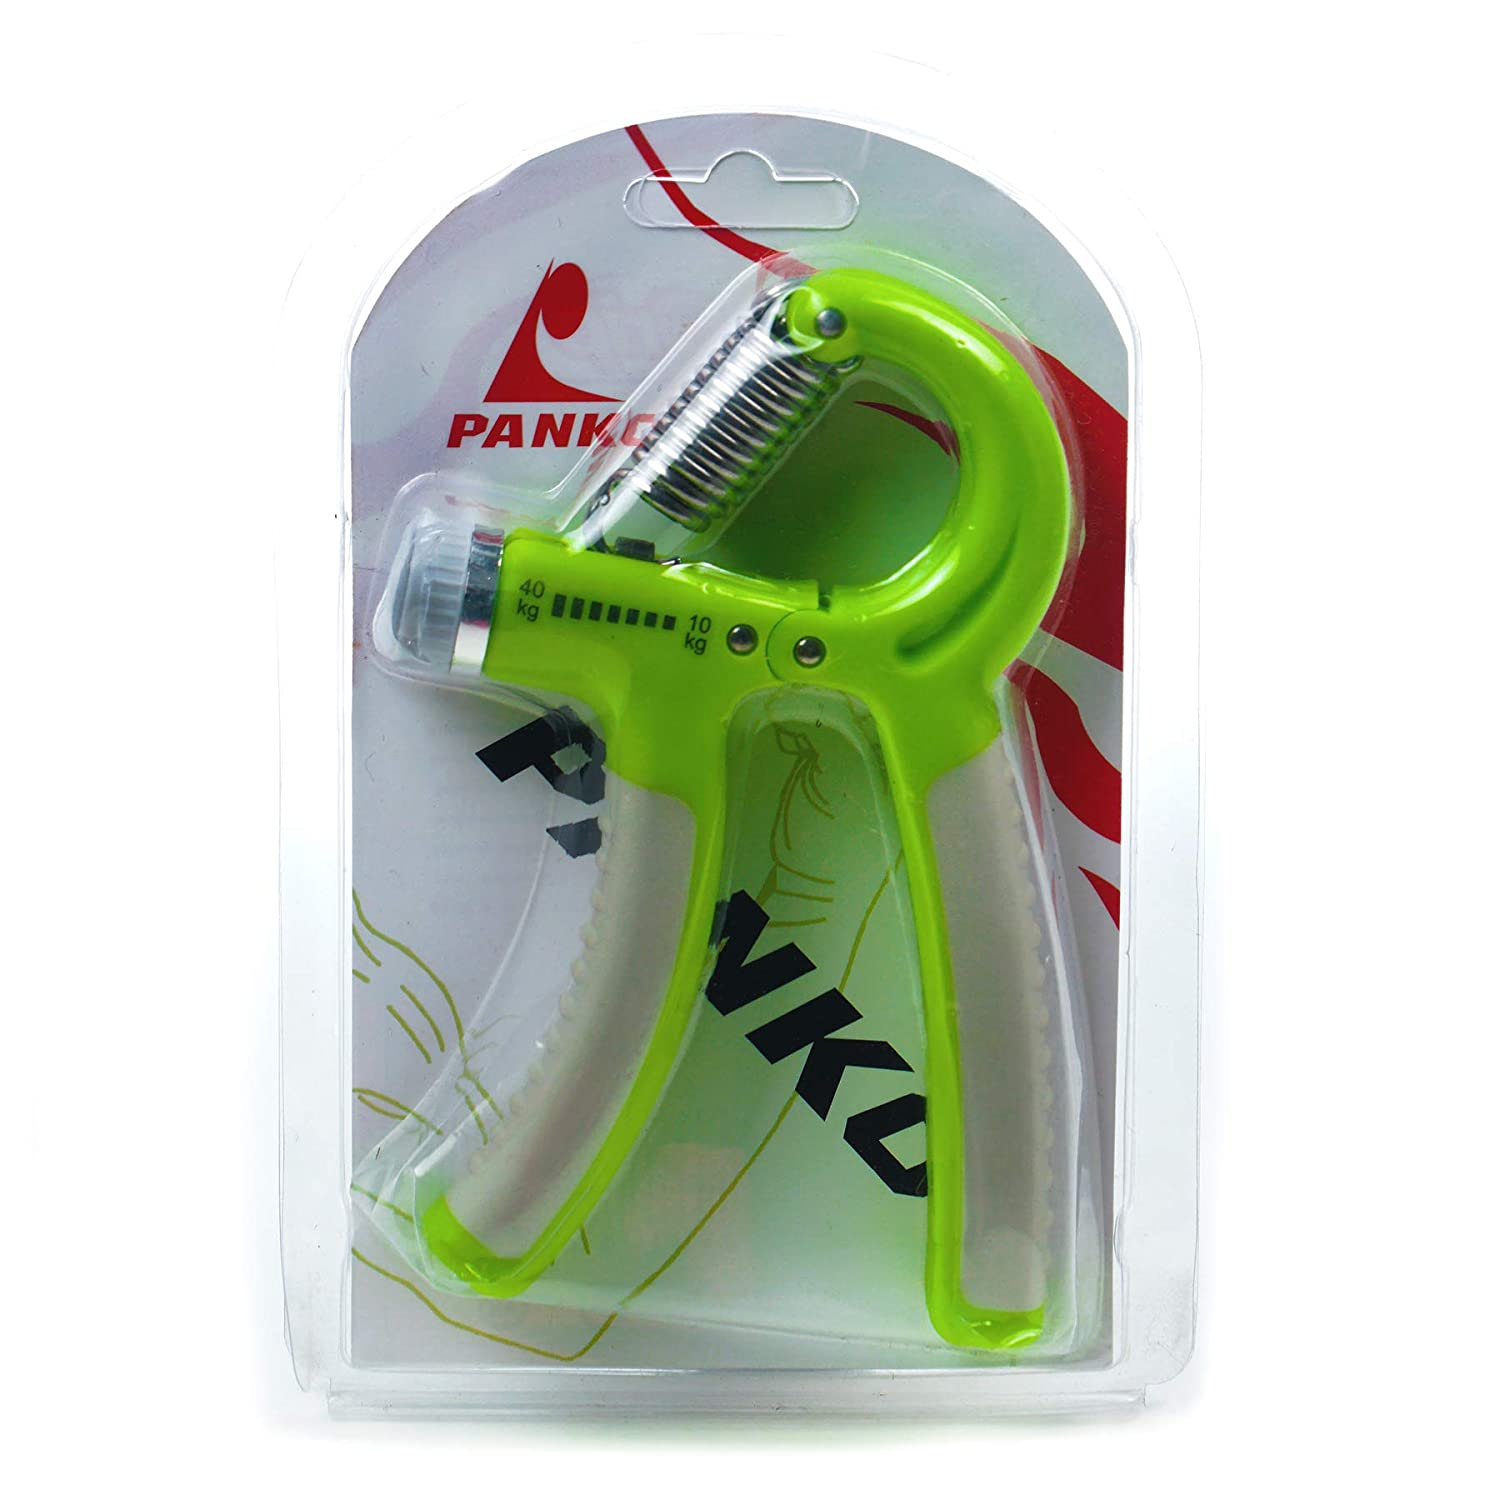 Power Grip (Green) - 10 Kg To 40 Kg - Adjustable